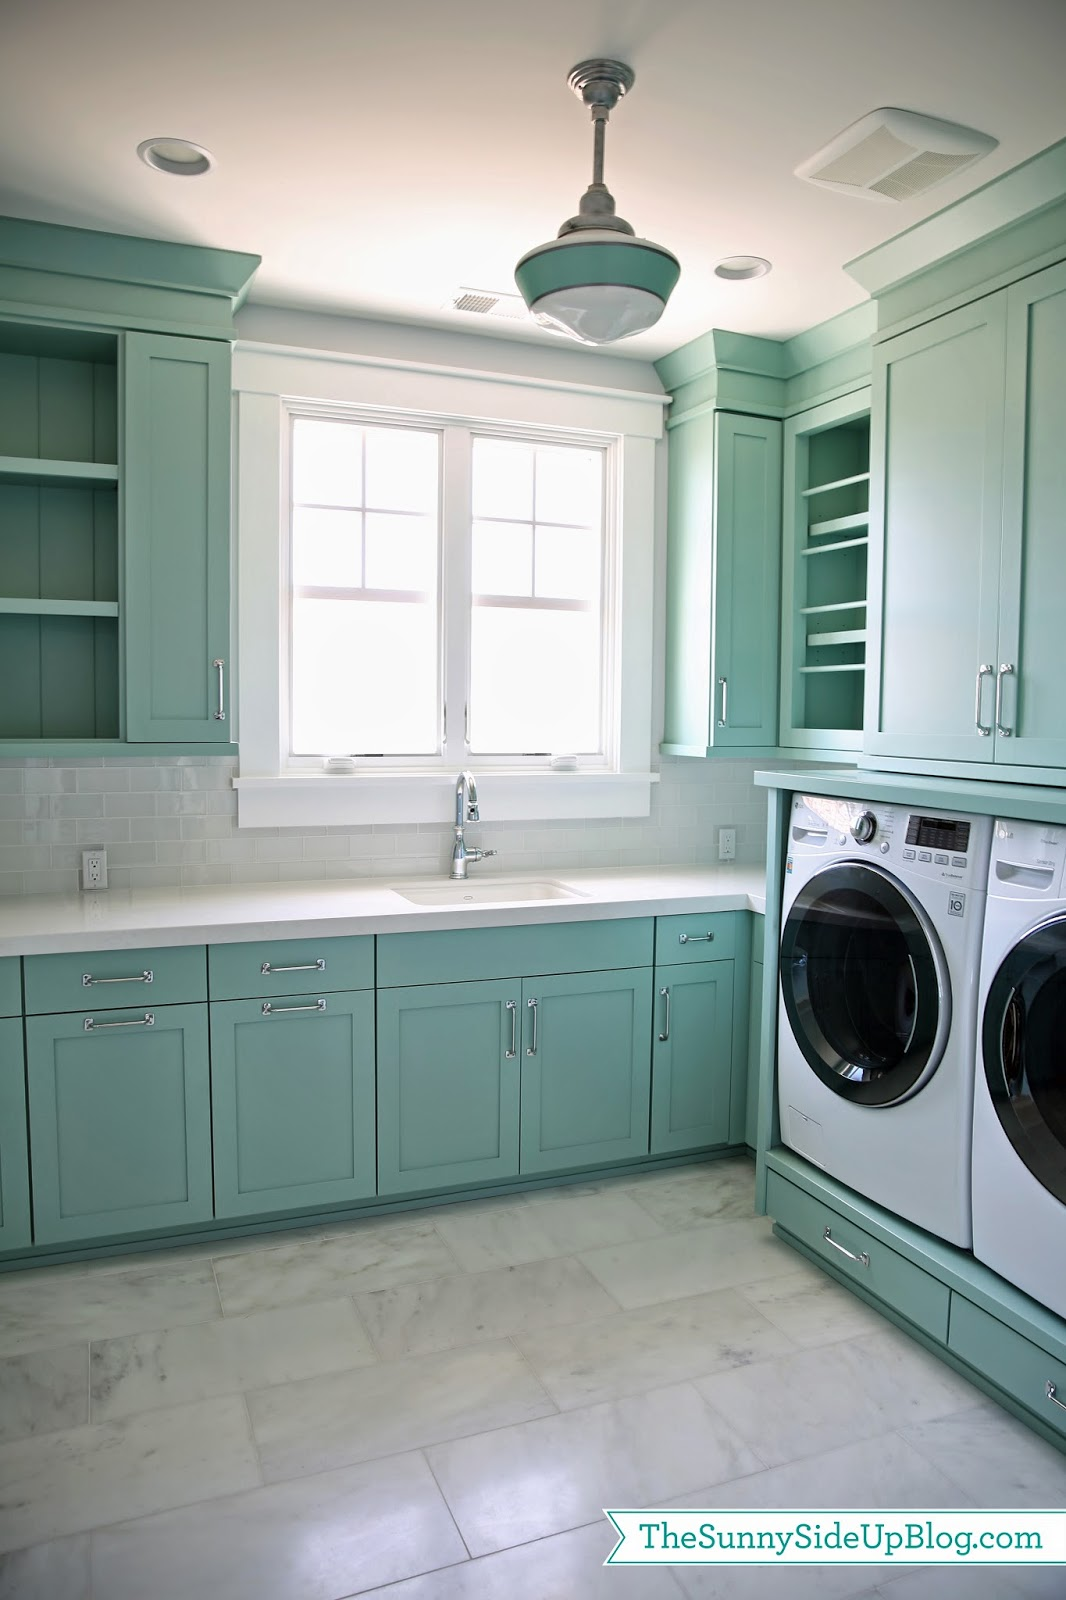 Pretty Bedrooms Upstairs Laundry Room The Sunny Side Up Blog